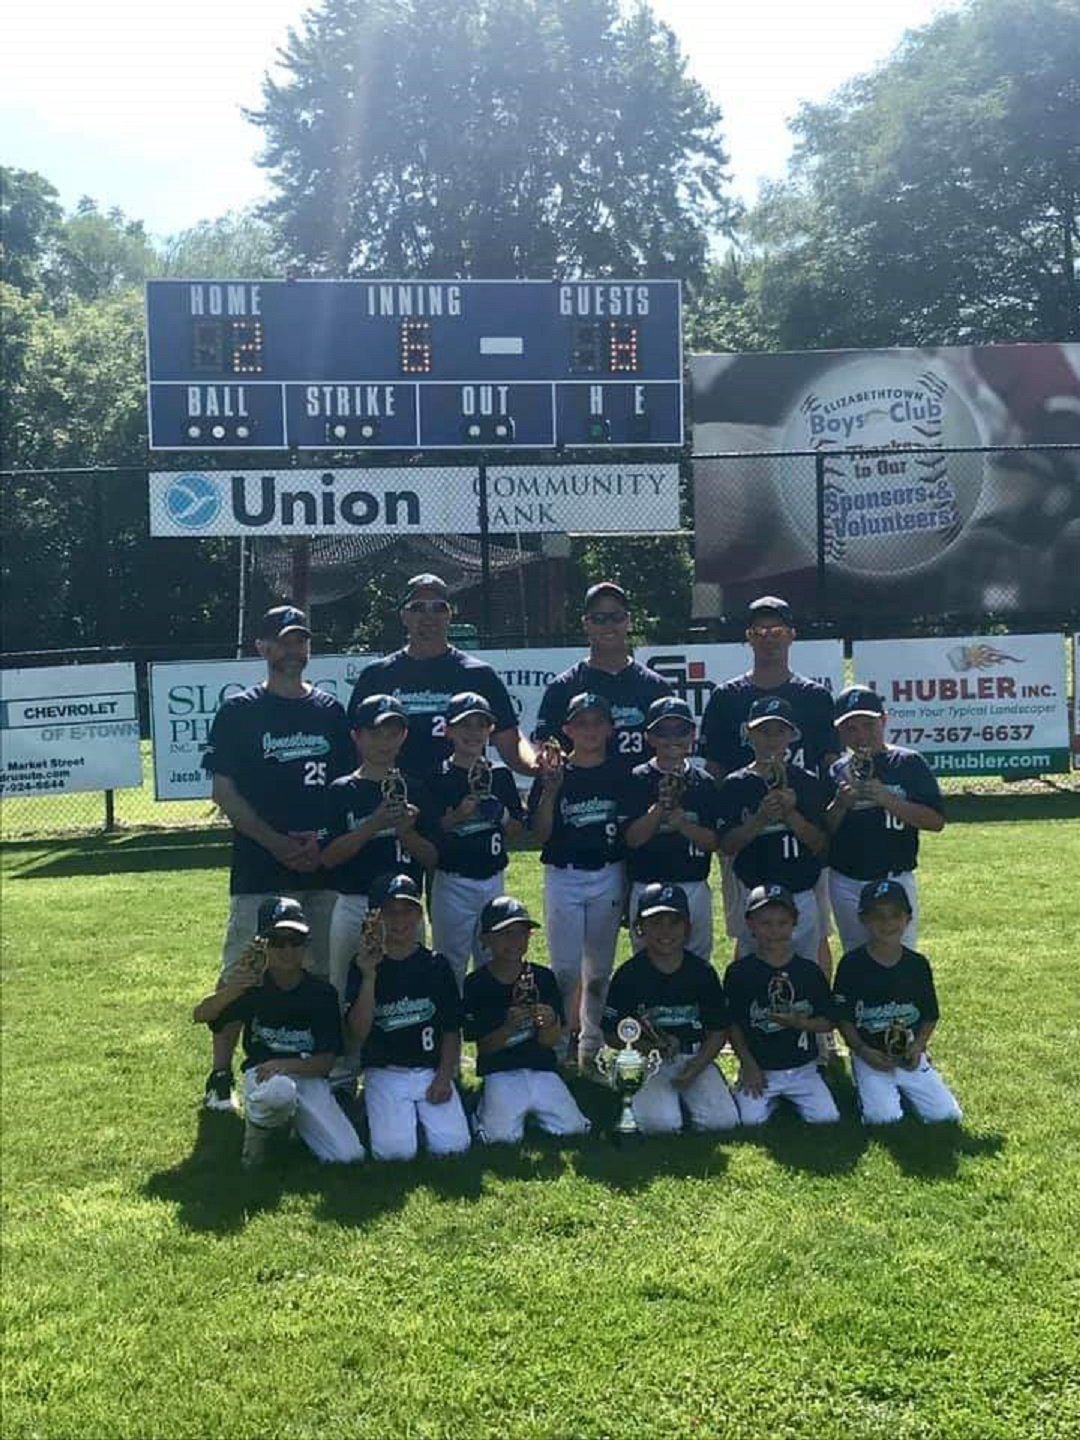 2019 Elizabethtown Bears Cup 8U Champion - Northern Lebanon